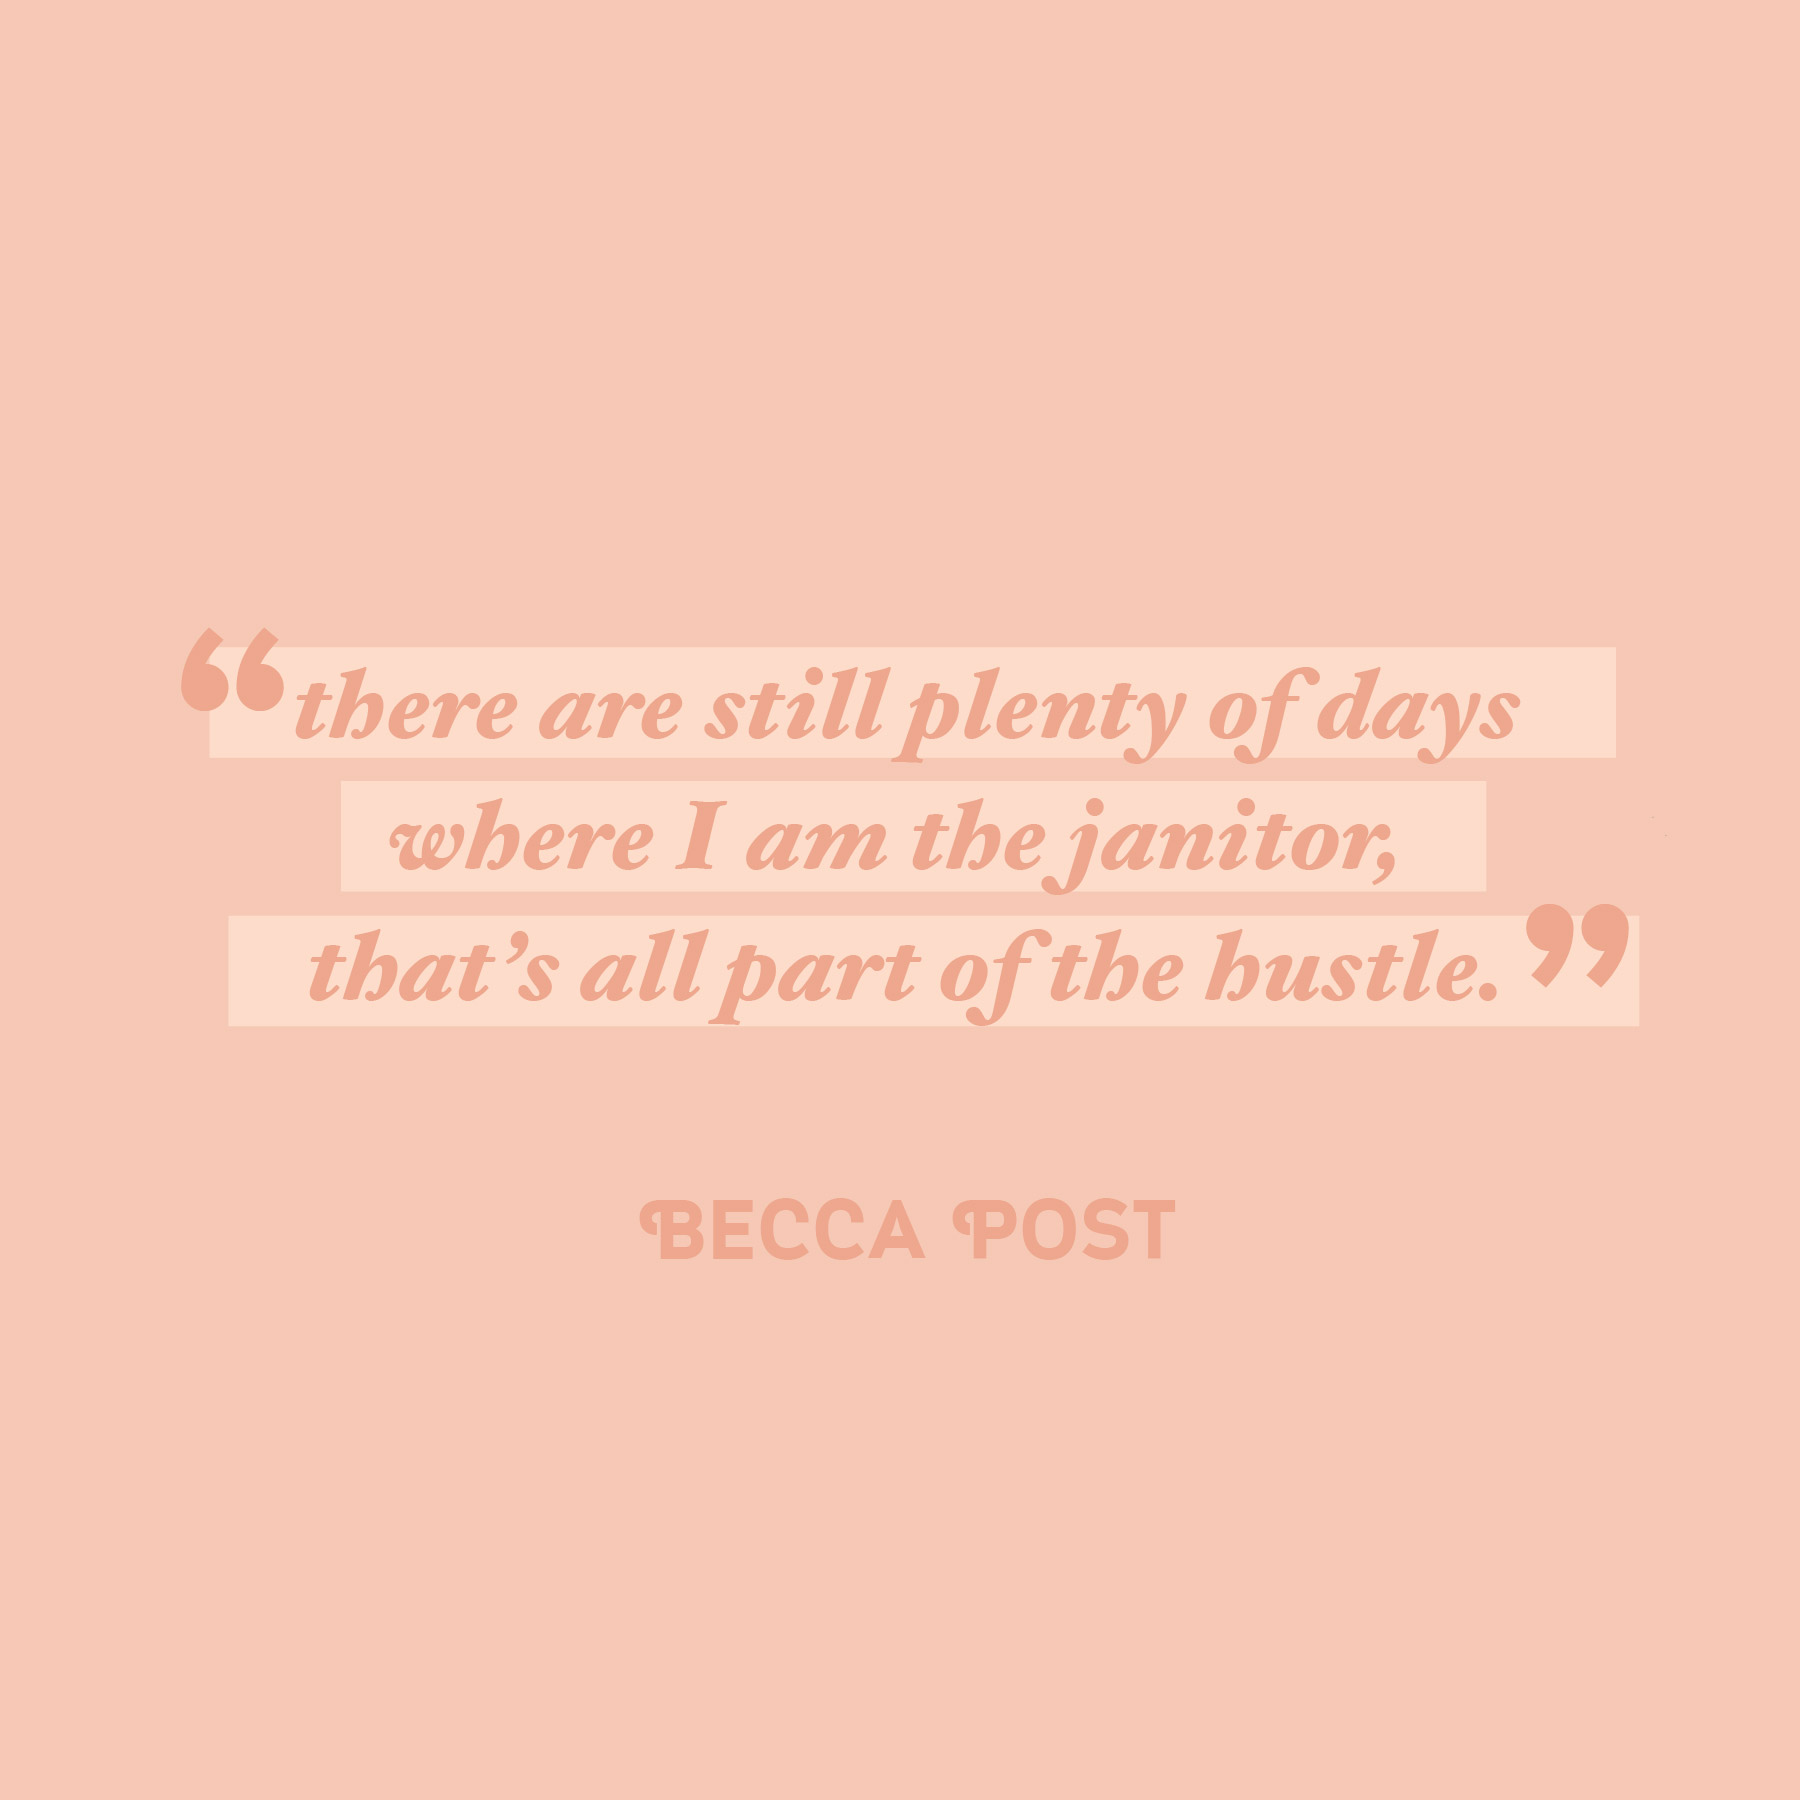 BeccaPost_INTERVIEWquote-01.jpg